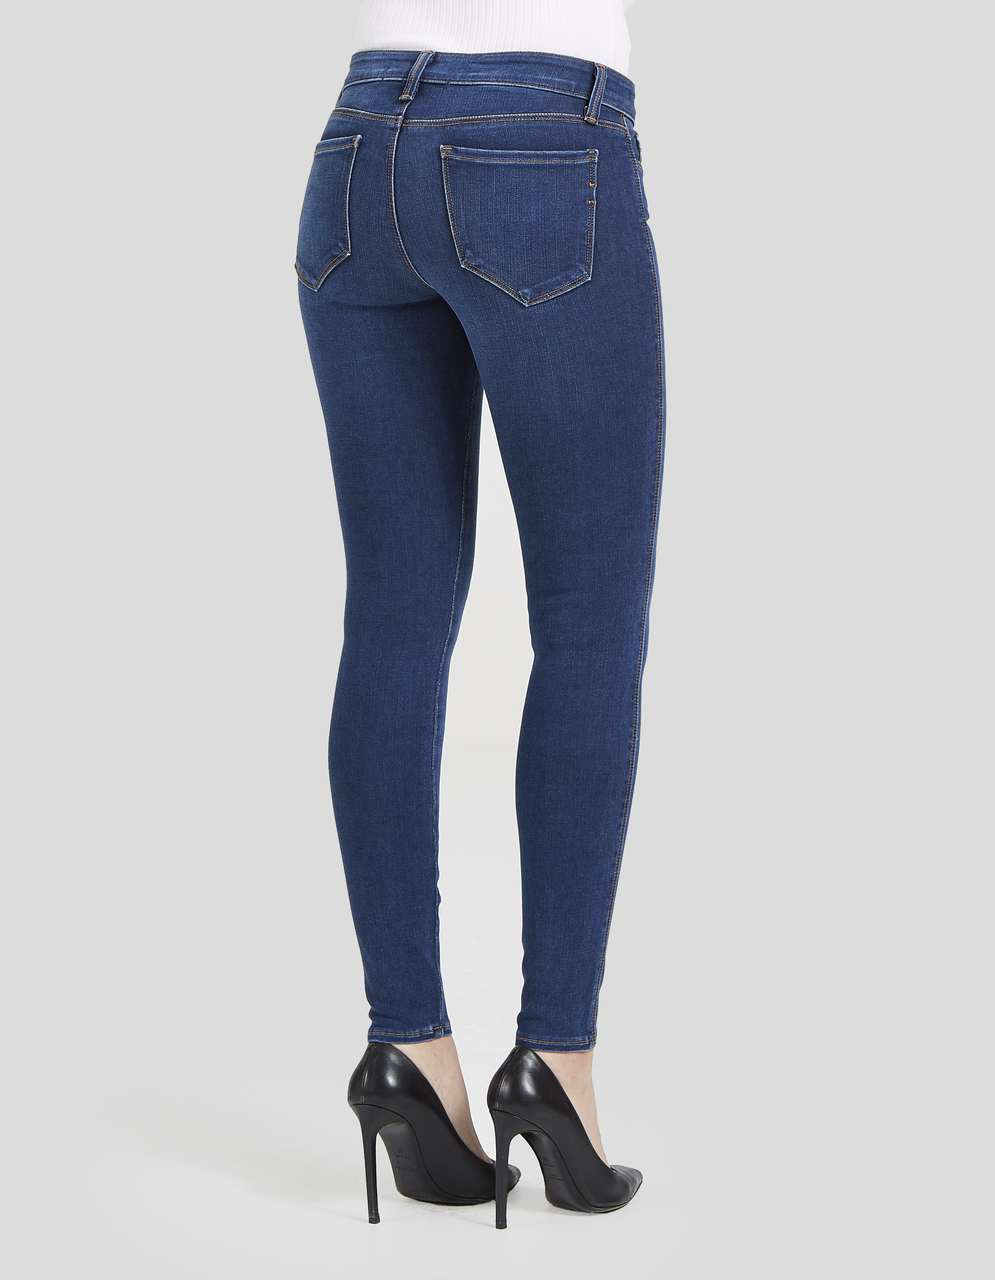 to wear - High Crawford waist skinny jeans video